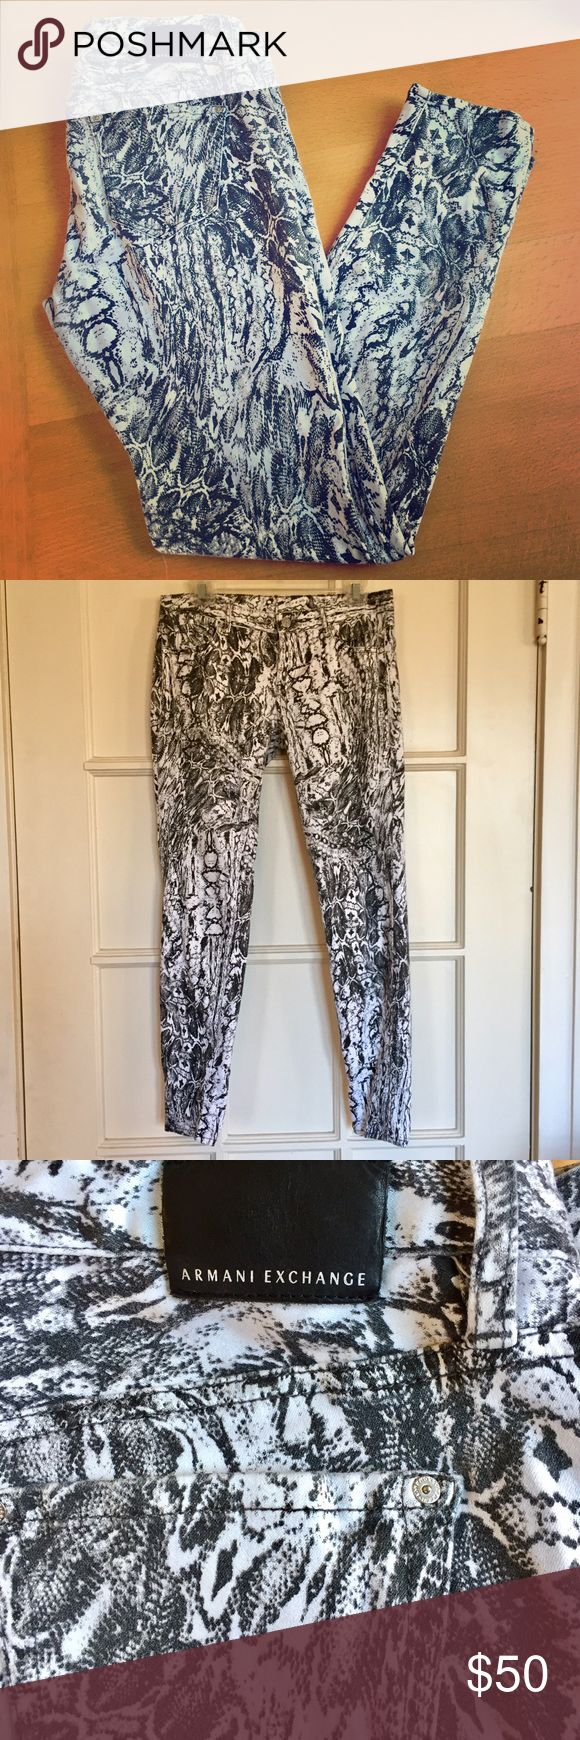 Armani Exchange snake print skinny jeans Sexy snake print skinny jeans. Stretchy, comfortable material.  Used-in great condition! Size 8. Armani Exchange Jeans Skinny